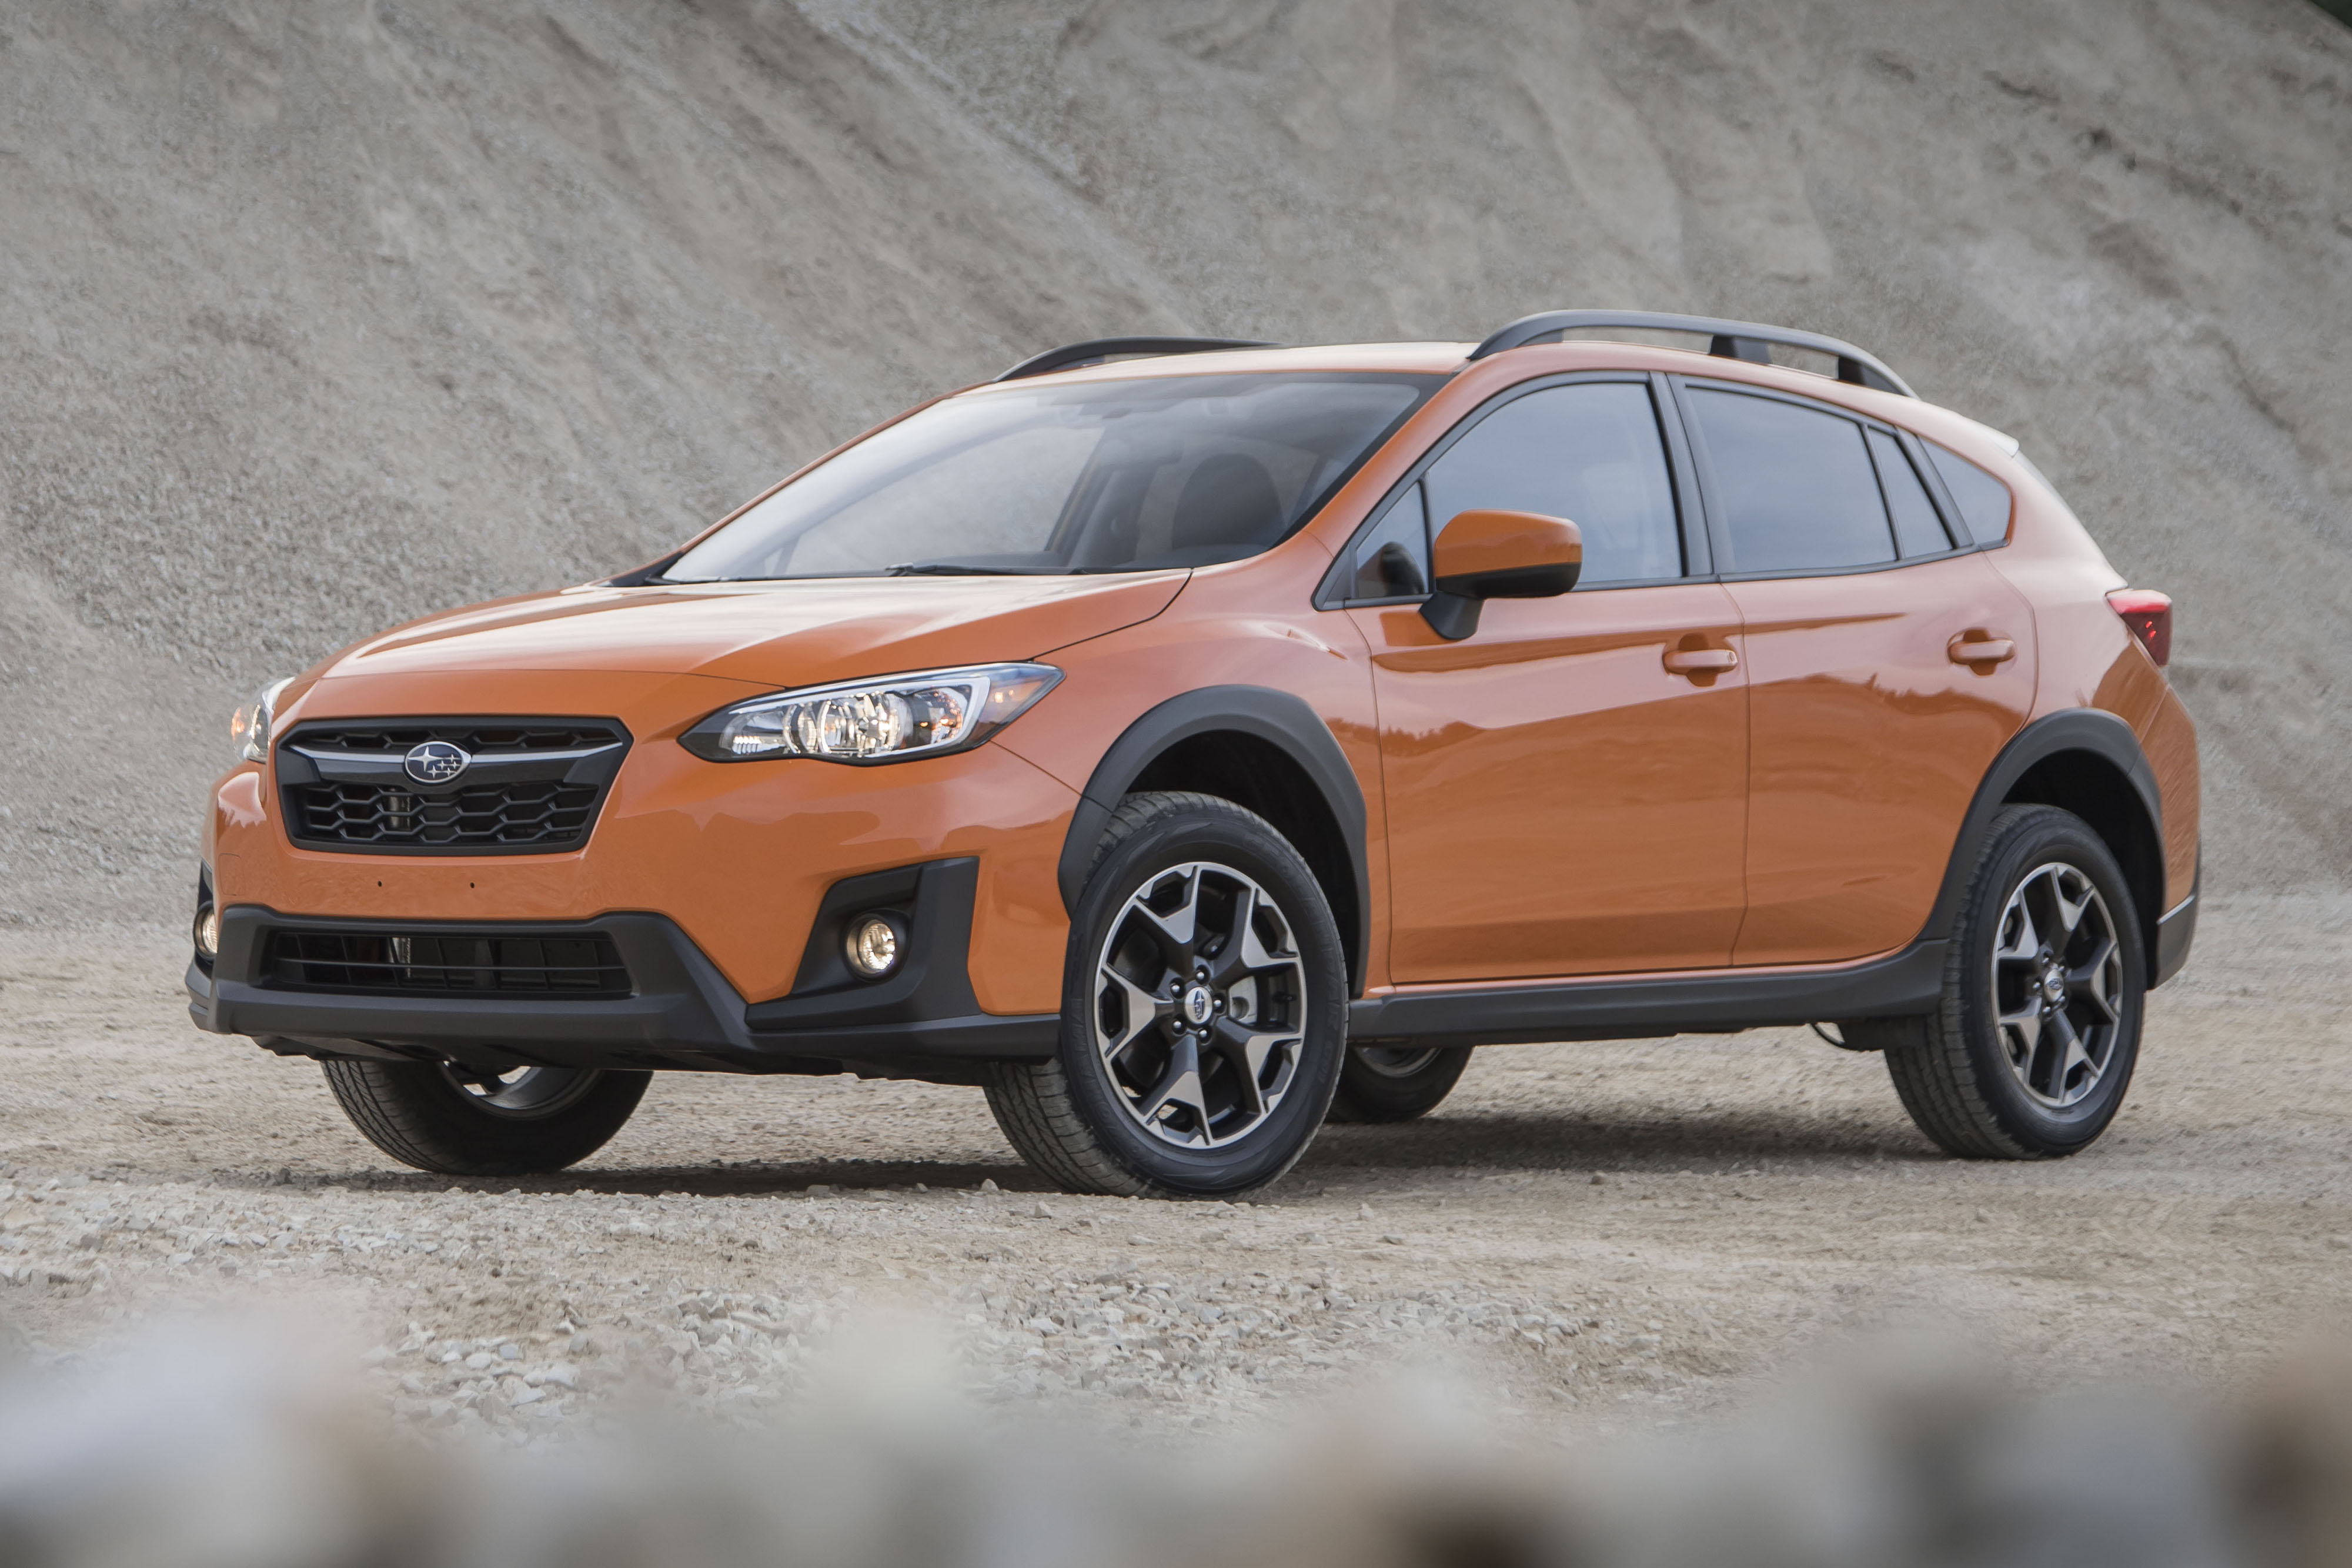 2020 Subaru Crosstrek Gets Price Bump, Standard Safety Tech for Base Model